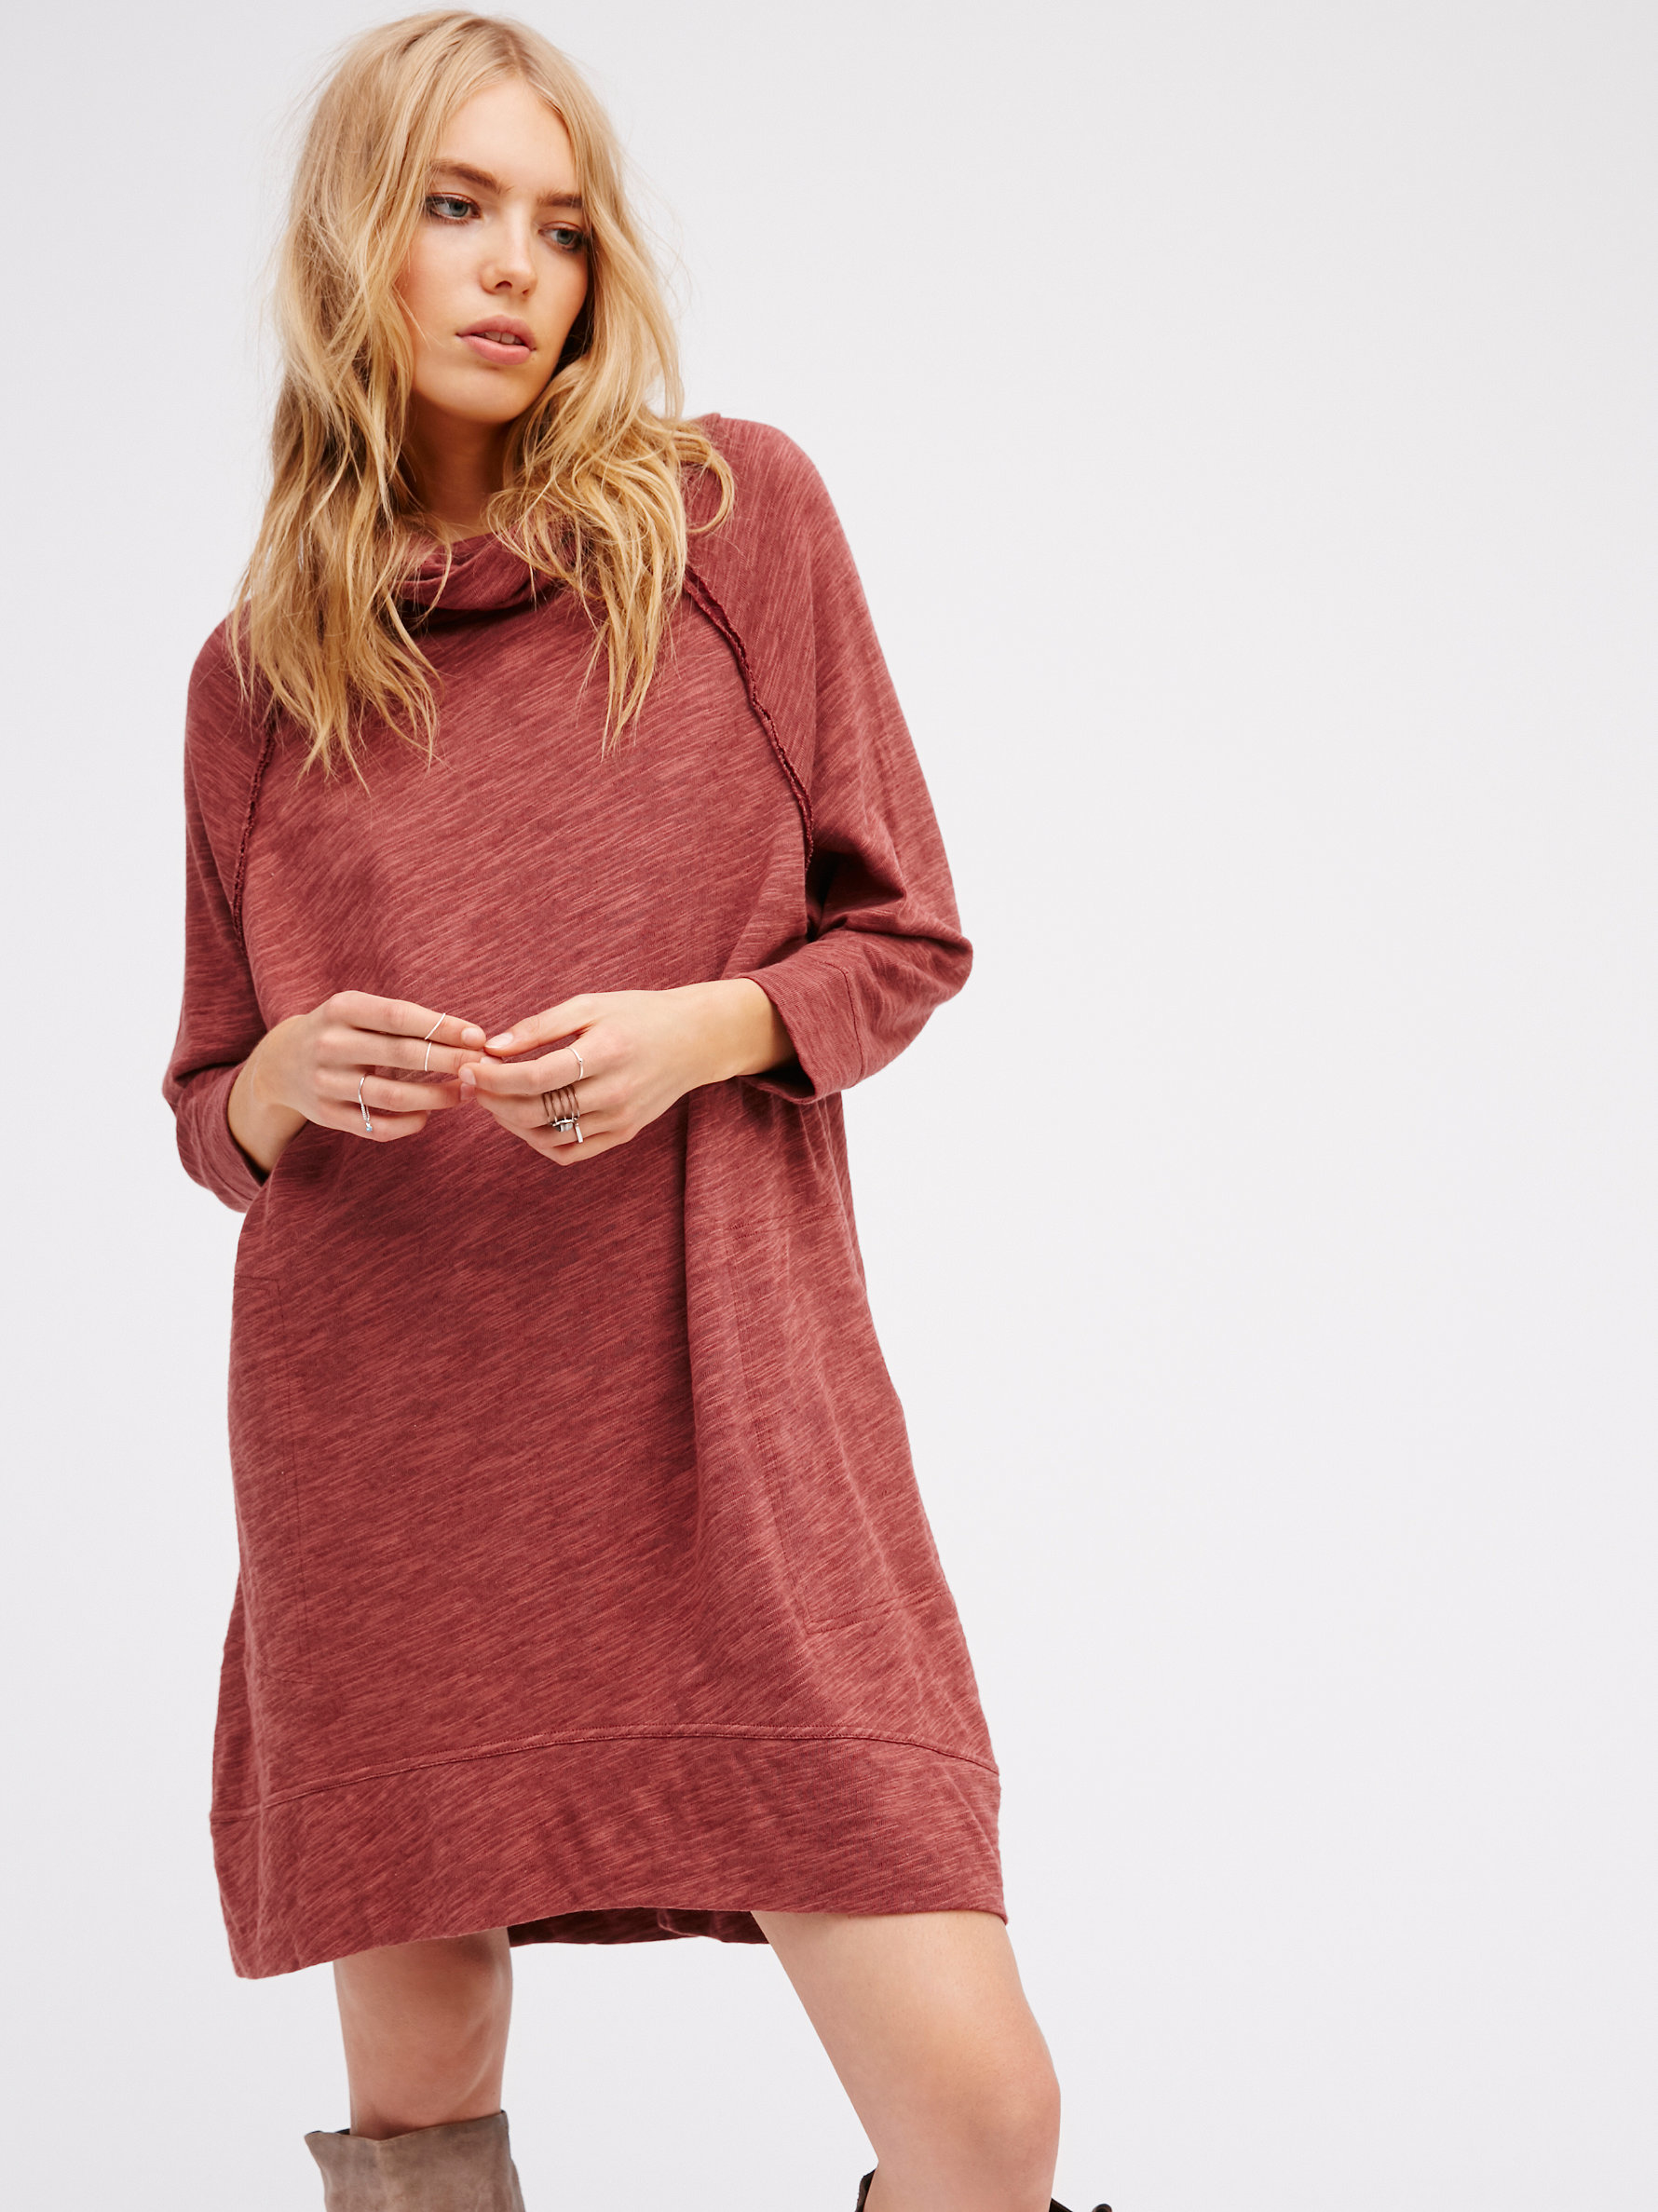 5526d5b051 Free People Terri Cocoon Pullover in Red - Lyst